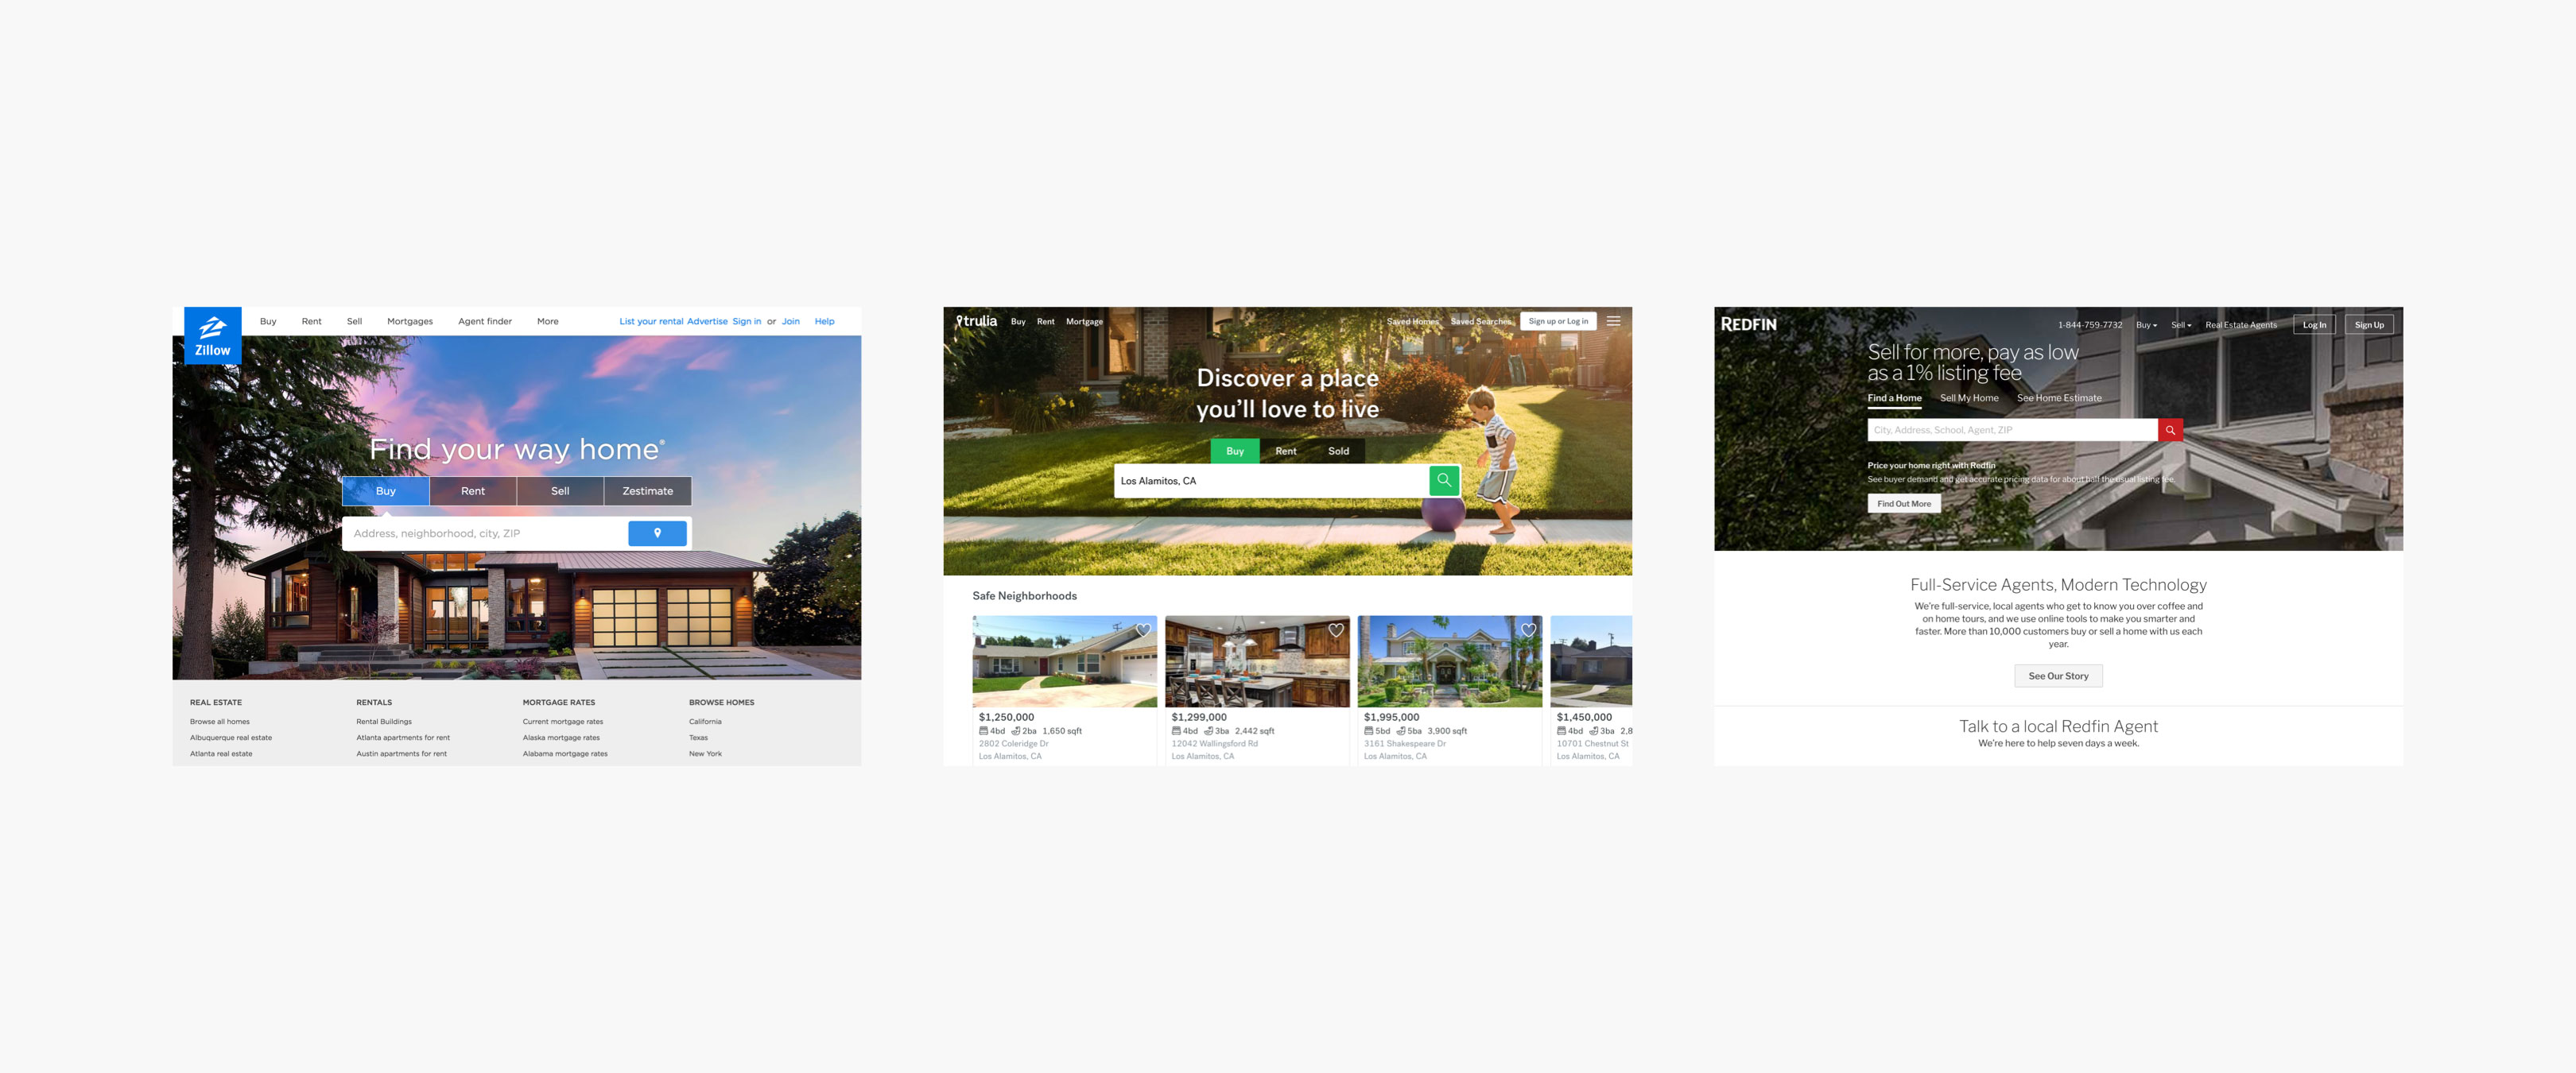 Landing pages of Zillow, Trulia, and Redfin